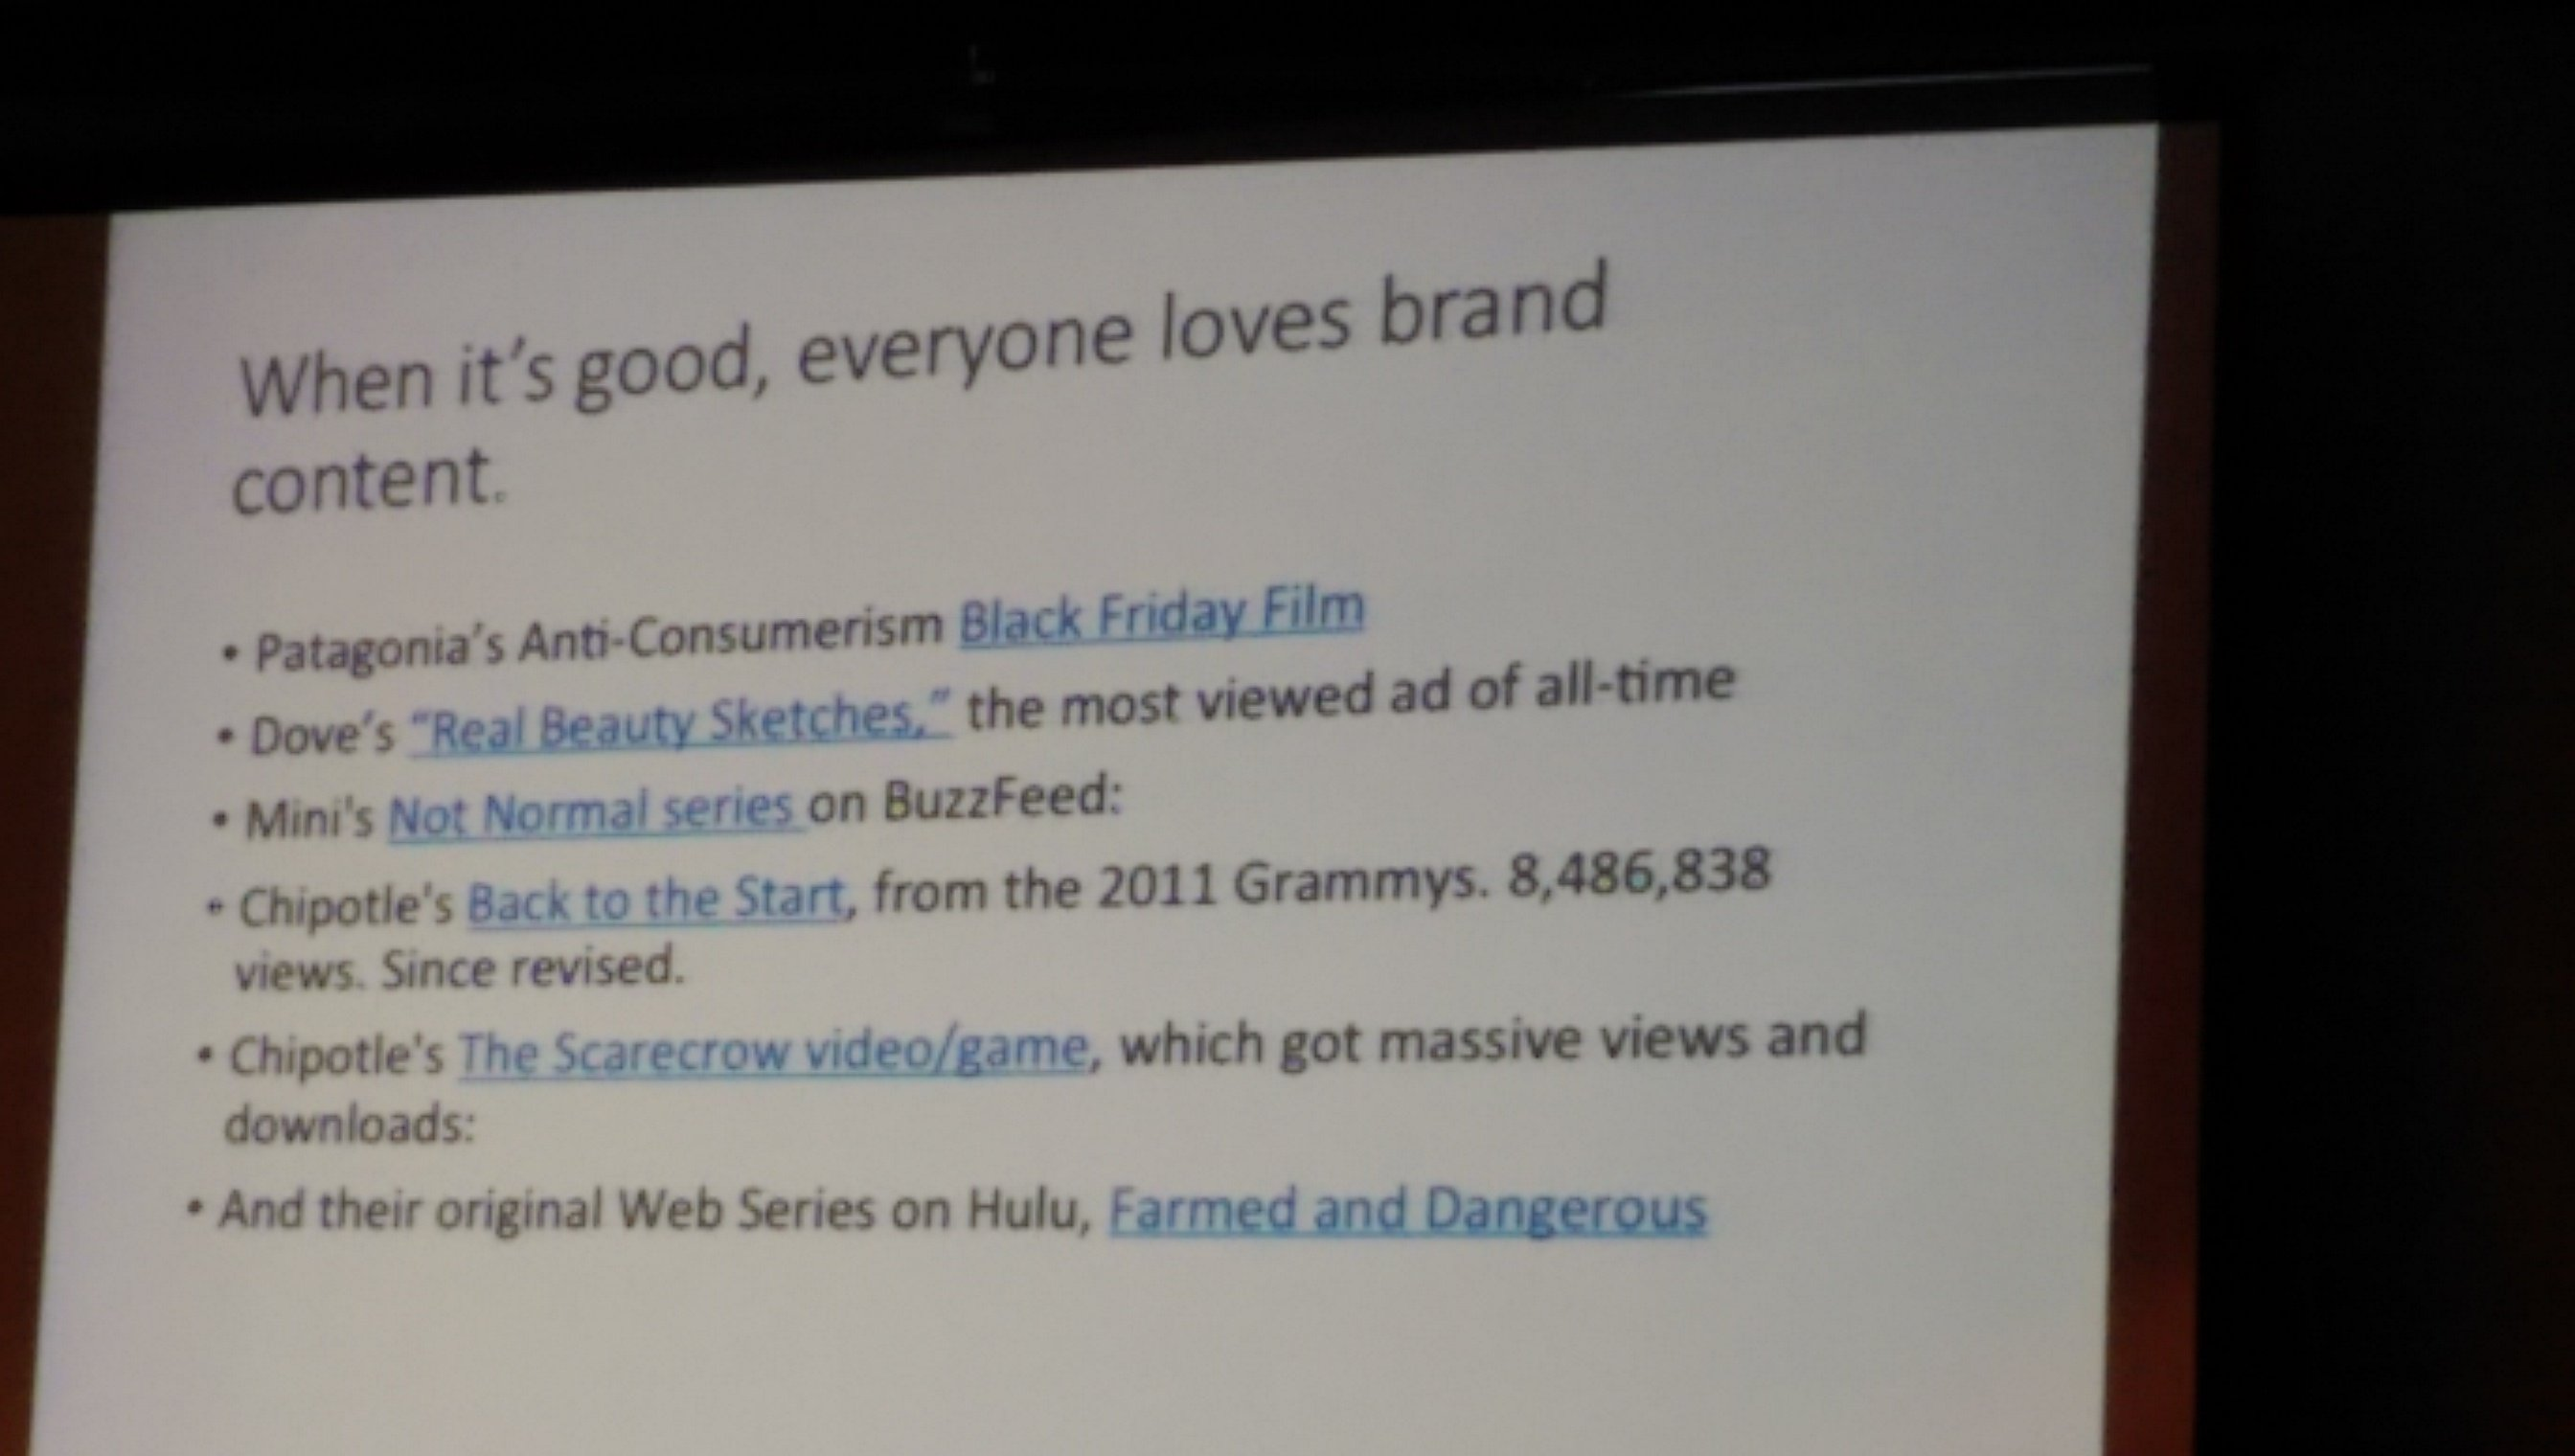 Examples of good content marketing, as presented by conference panel presenters